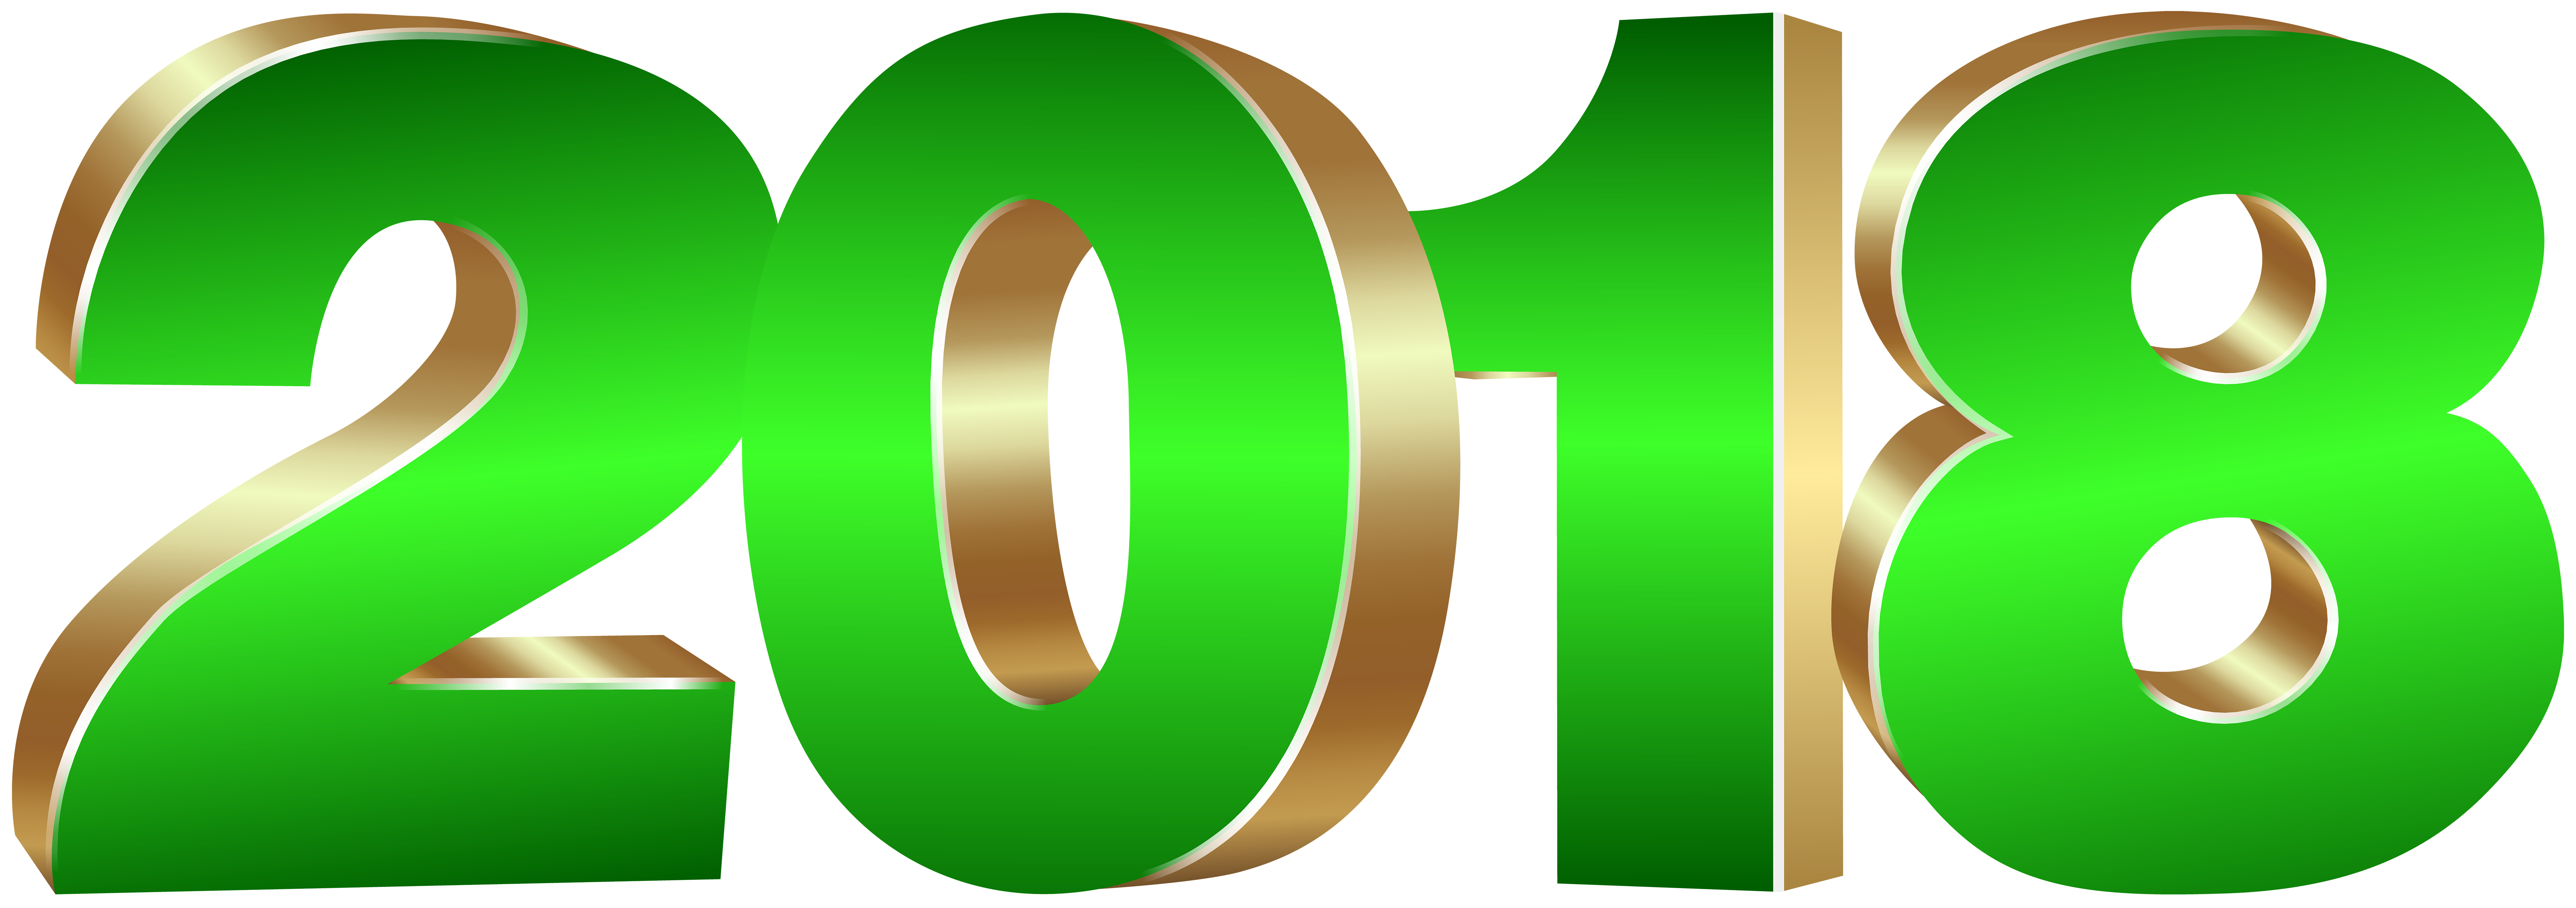 2018 Gold and Green PNG Clip Art Image.